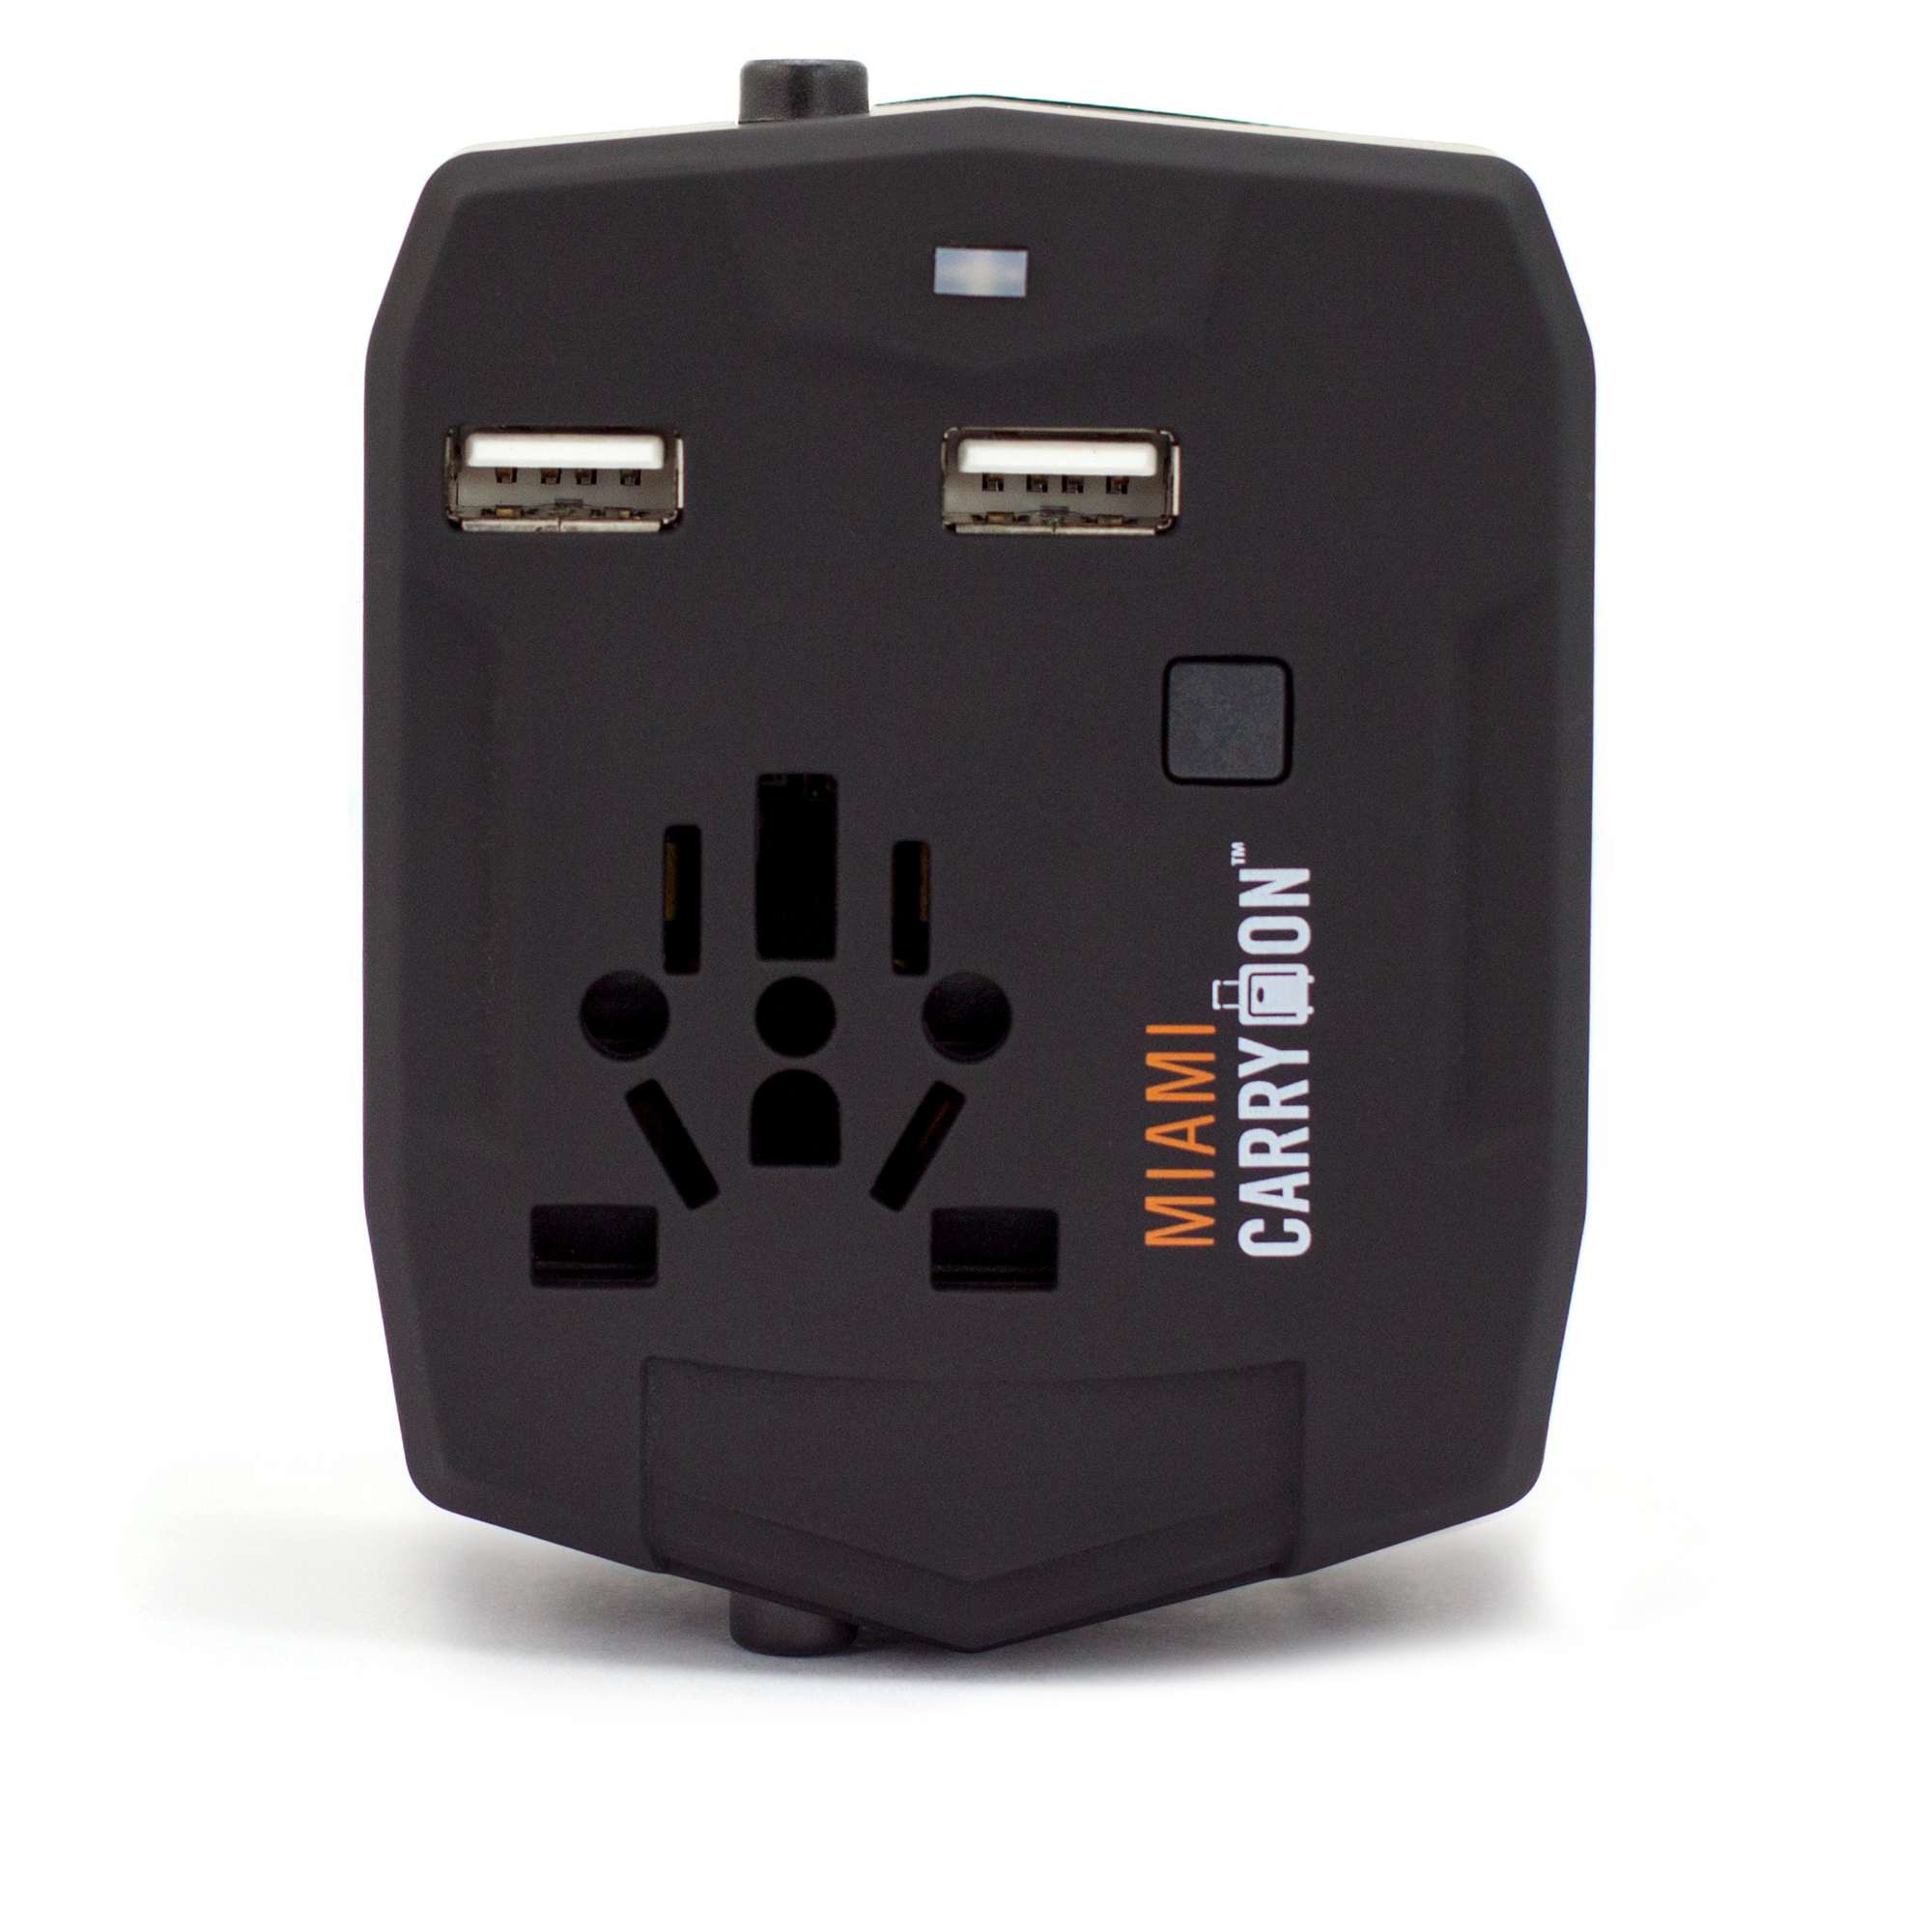 Travel Adapter with 2800mAh Power Bank and USB Ports - Black / One Pack - Travellty